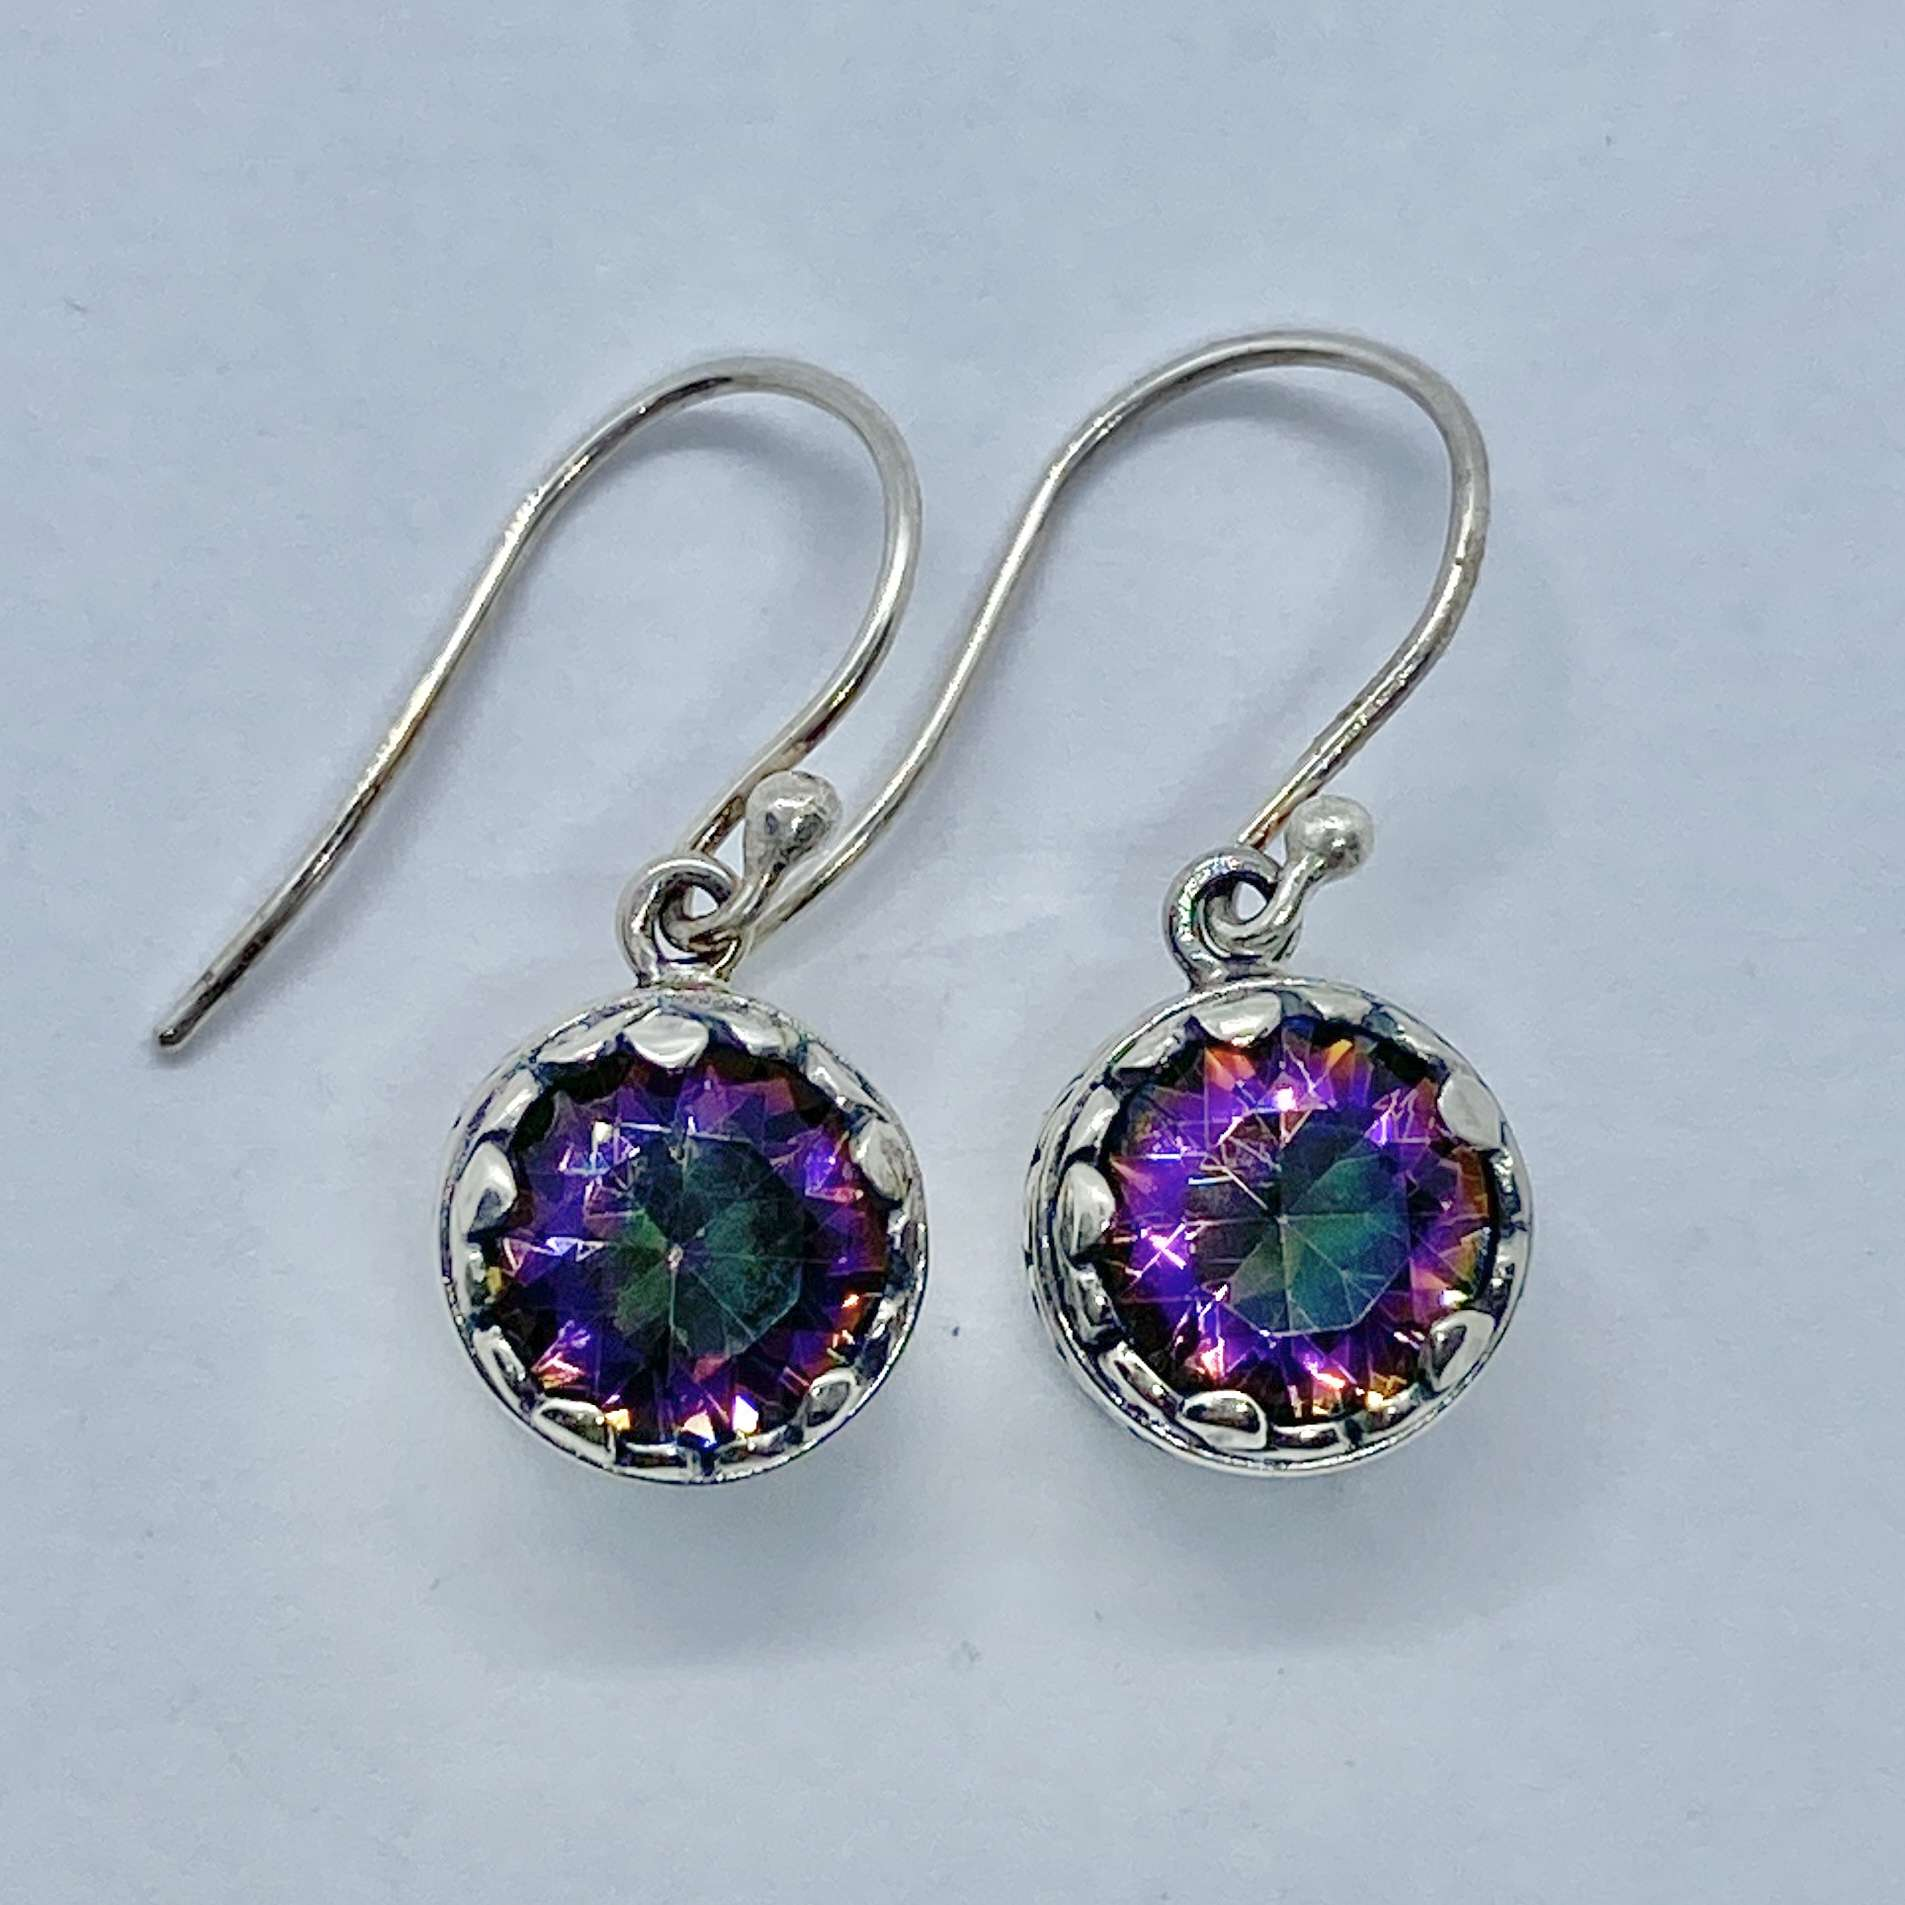 (HANDMADE 925 BALI SILVER EARRINGS WITH MYSTIC TOPAZ)